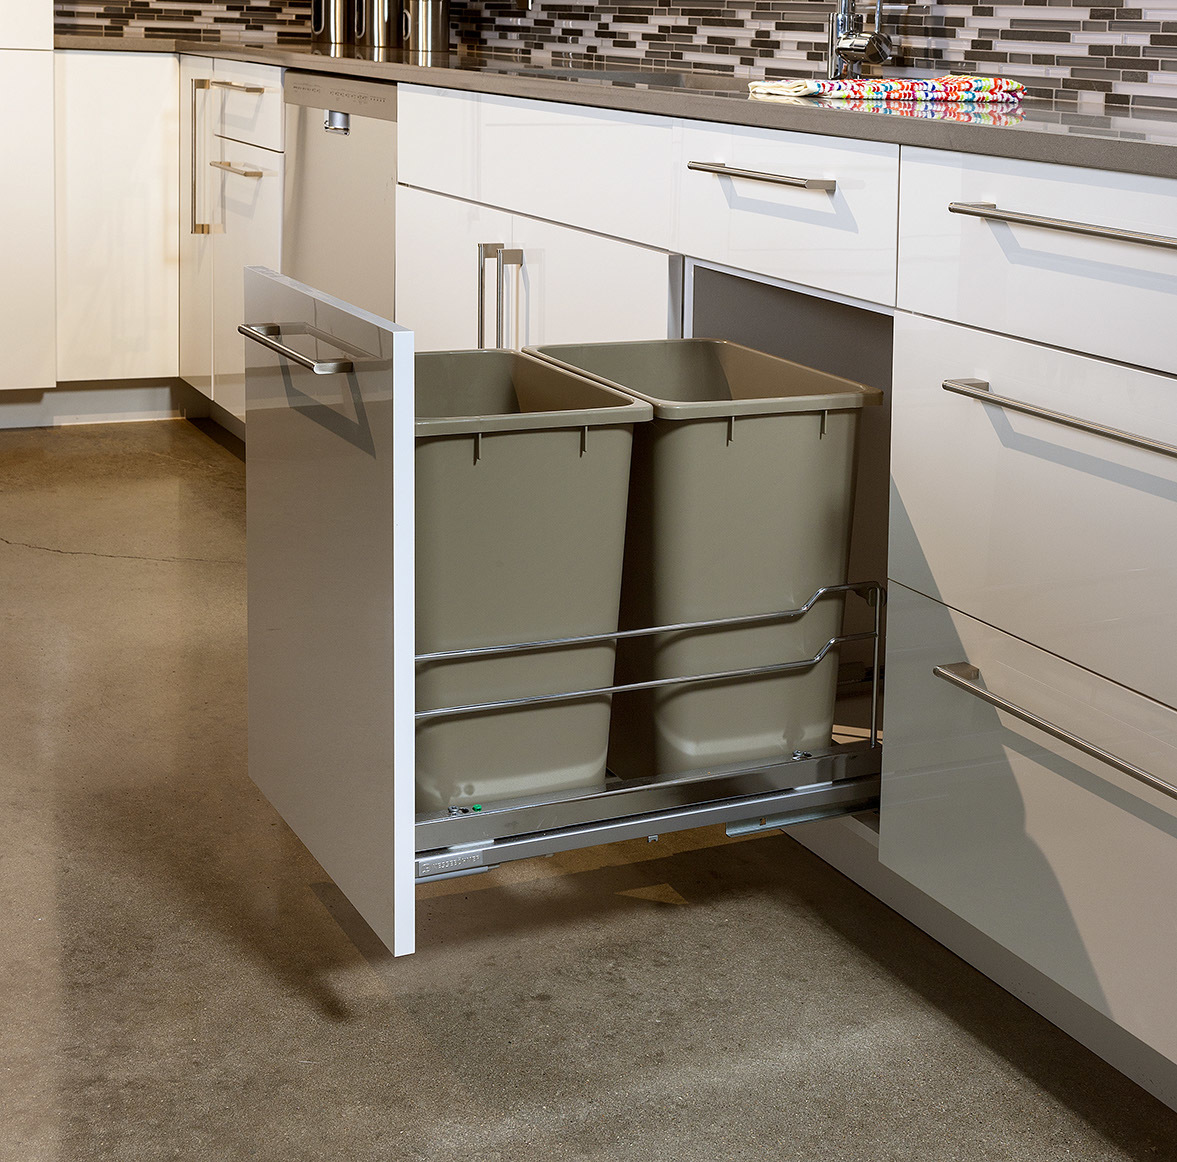 High Gloss Acrylic Cabinets in White and Painted Island in Dovetail by ShowplaceEVO - view 2